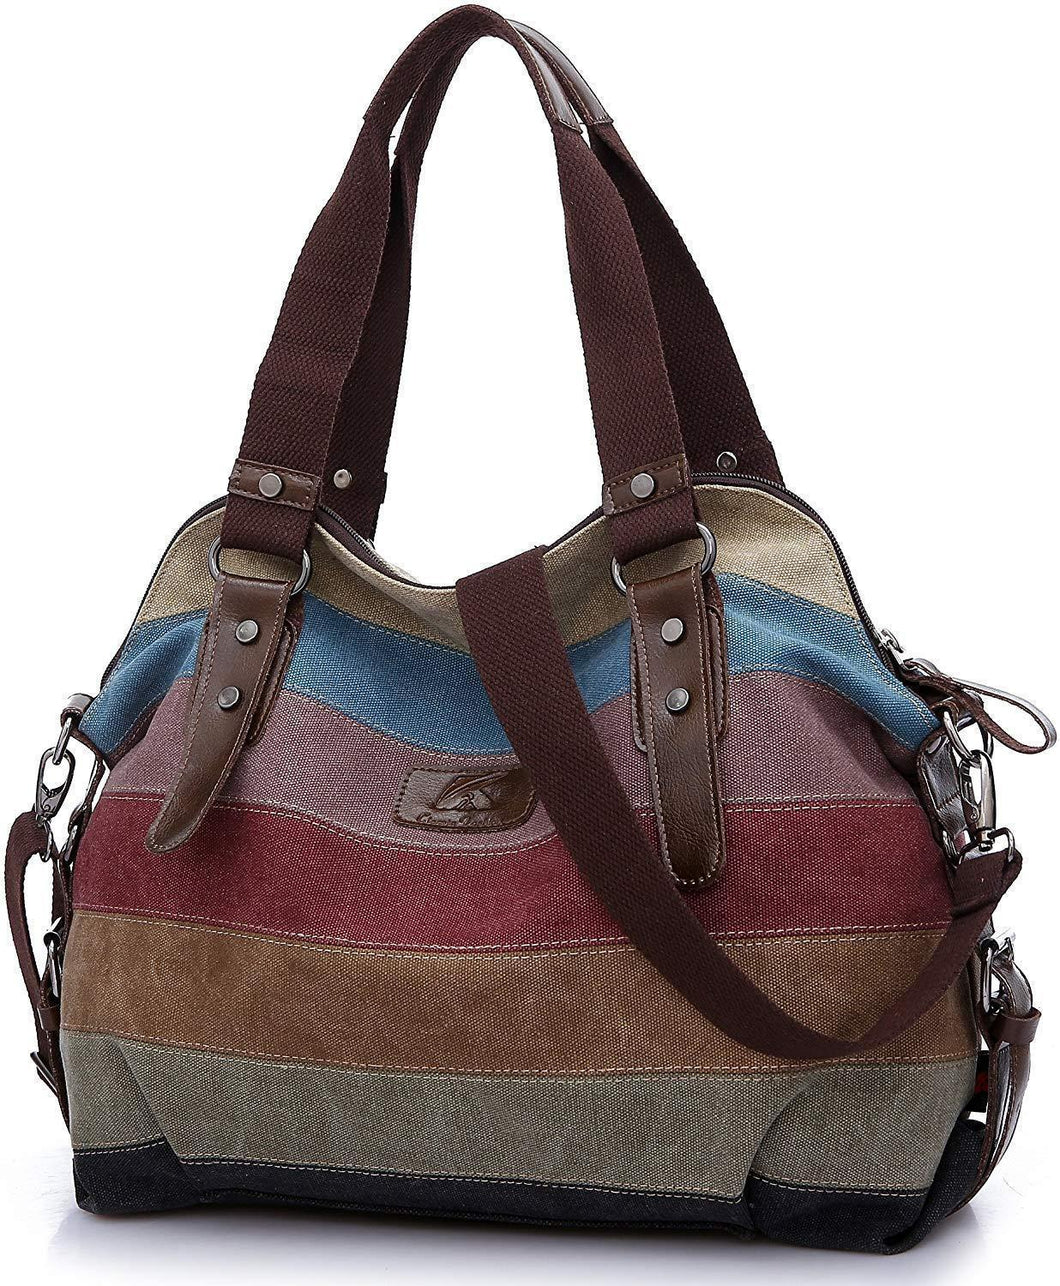 Women's Canvas Multi-Color Hobos Shoulder Bag Tote Handbag